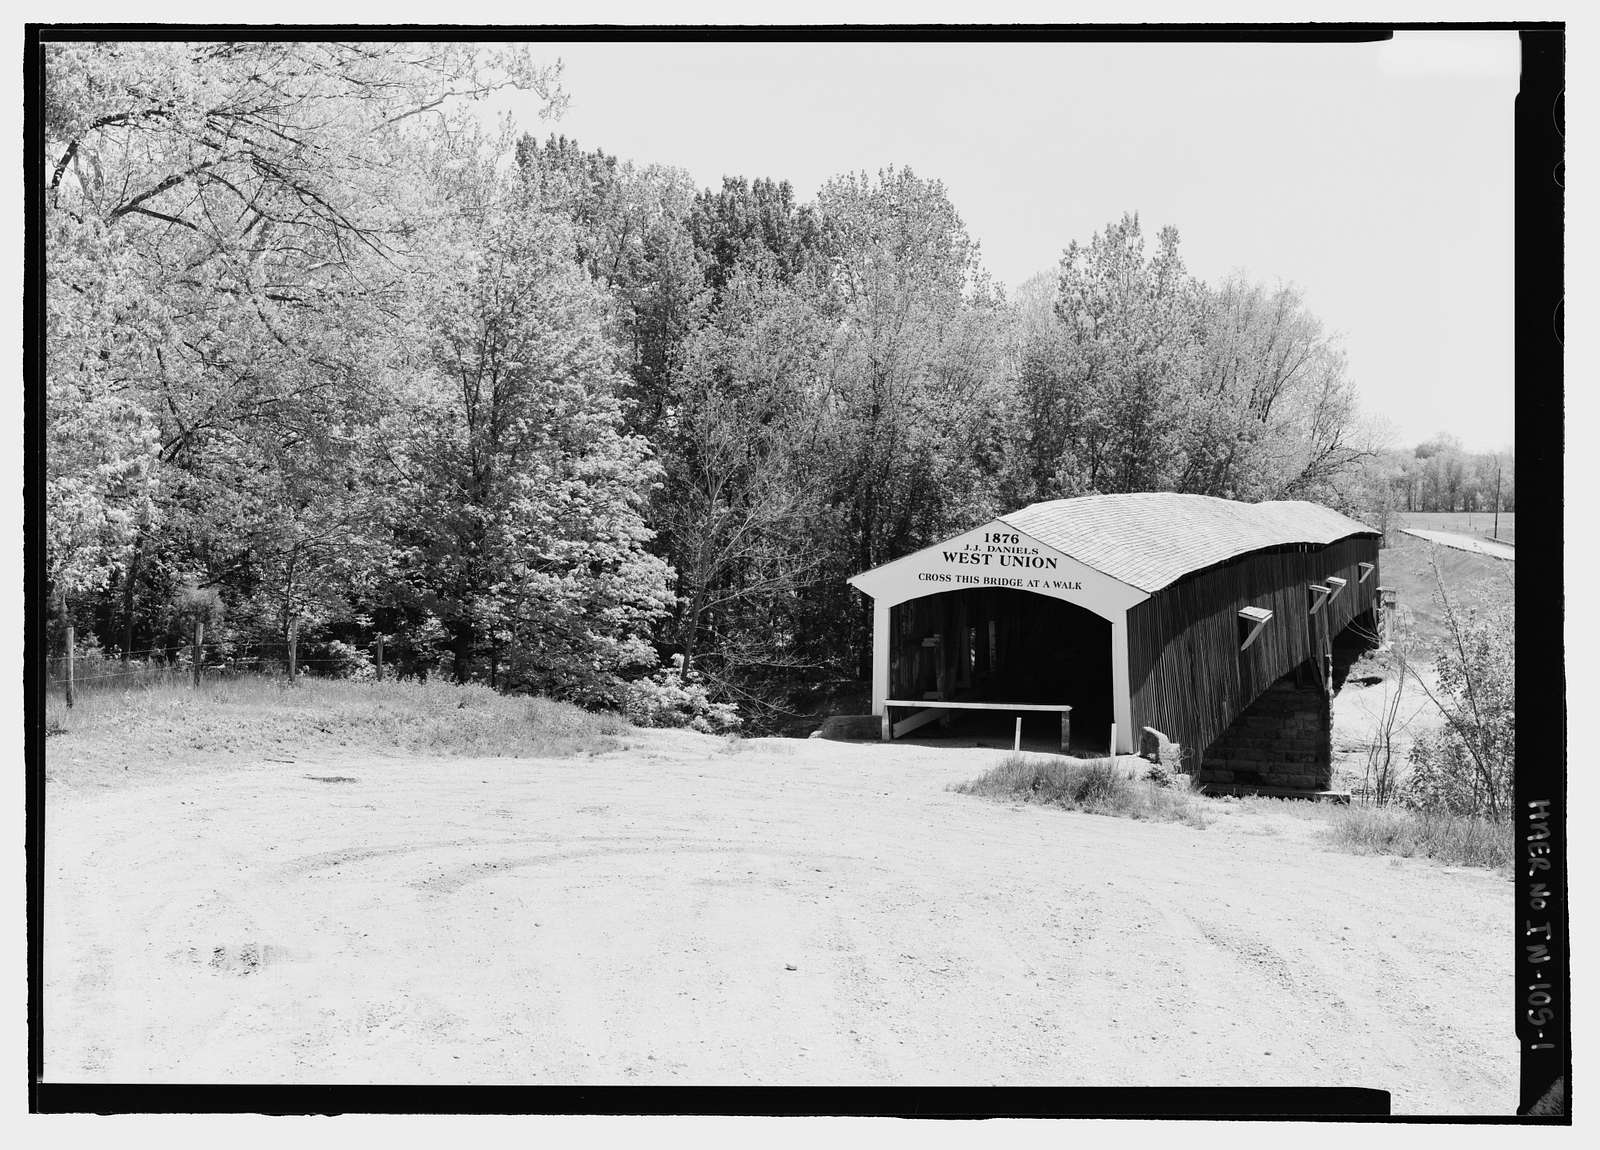 West Union Bridge, Spanning Sugar Creek, CR 525W, West Union, Parke County, IN